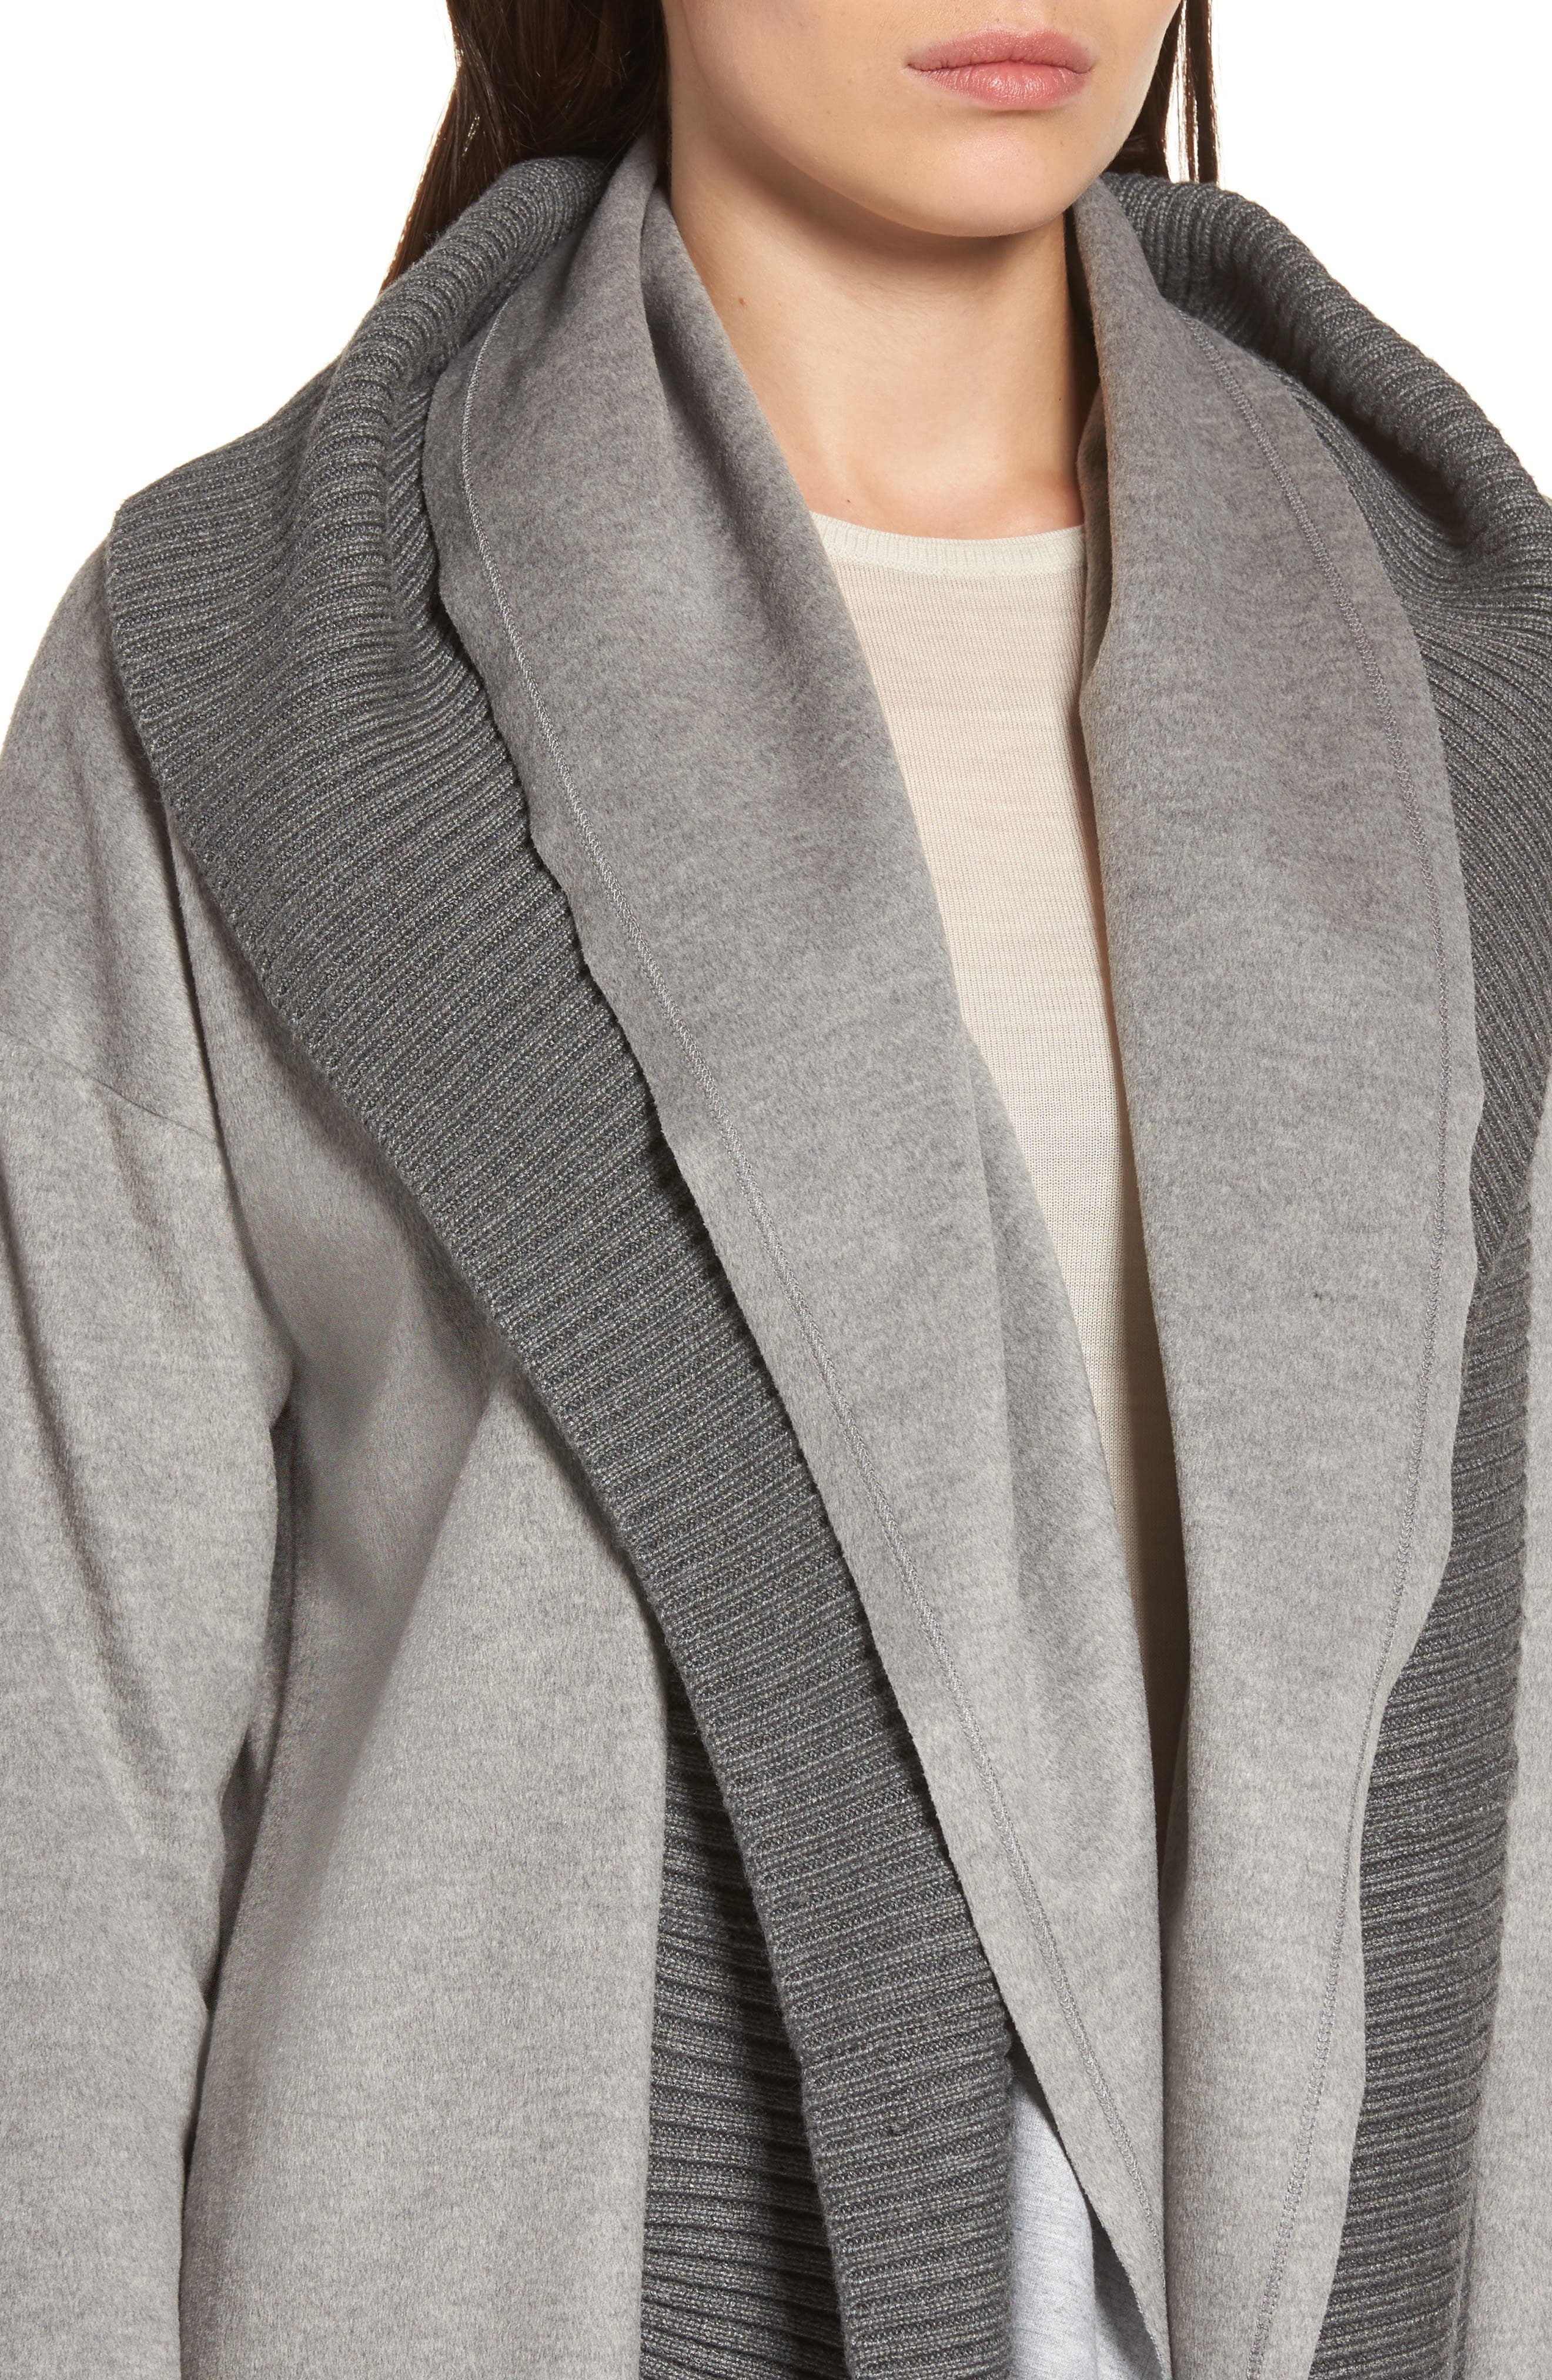 Brandy Stone Grey Duster Coat,                             Alternate thumbnail 4, color,                             Stone Grey